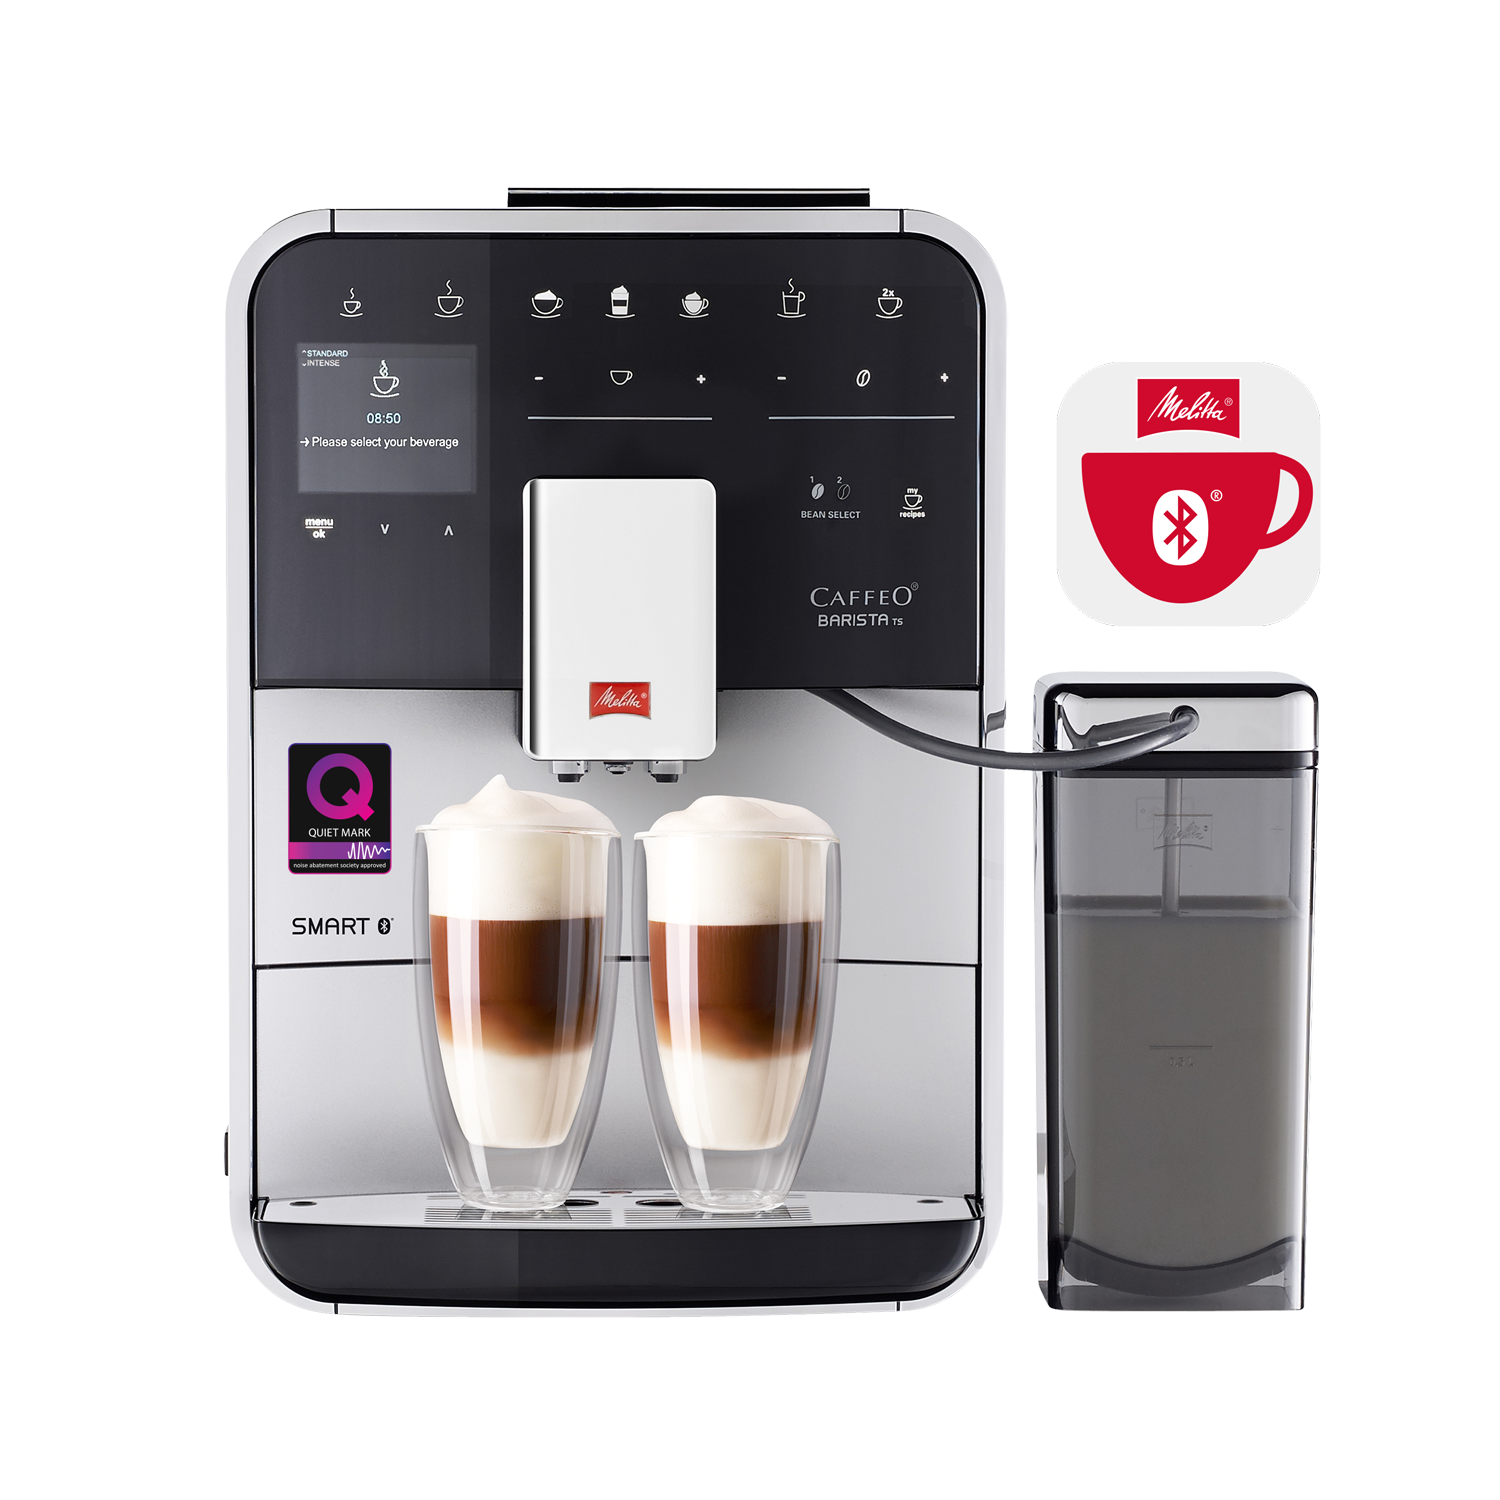 melitta product world barista ts smart. Black Bedroom Furniture Sets. Home Design Ideas